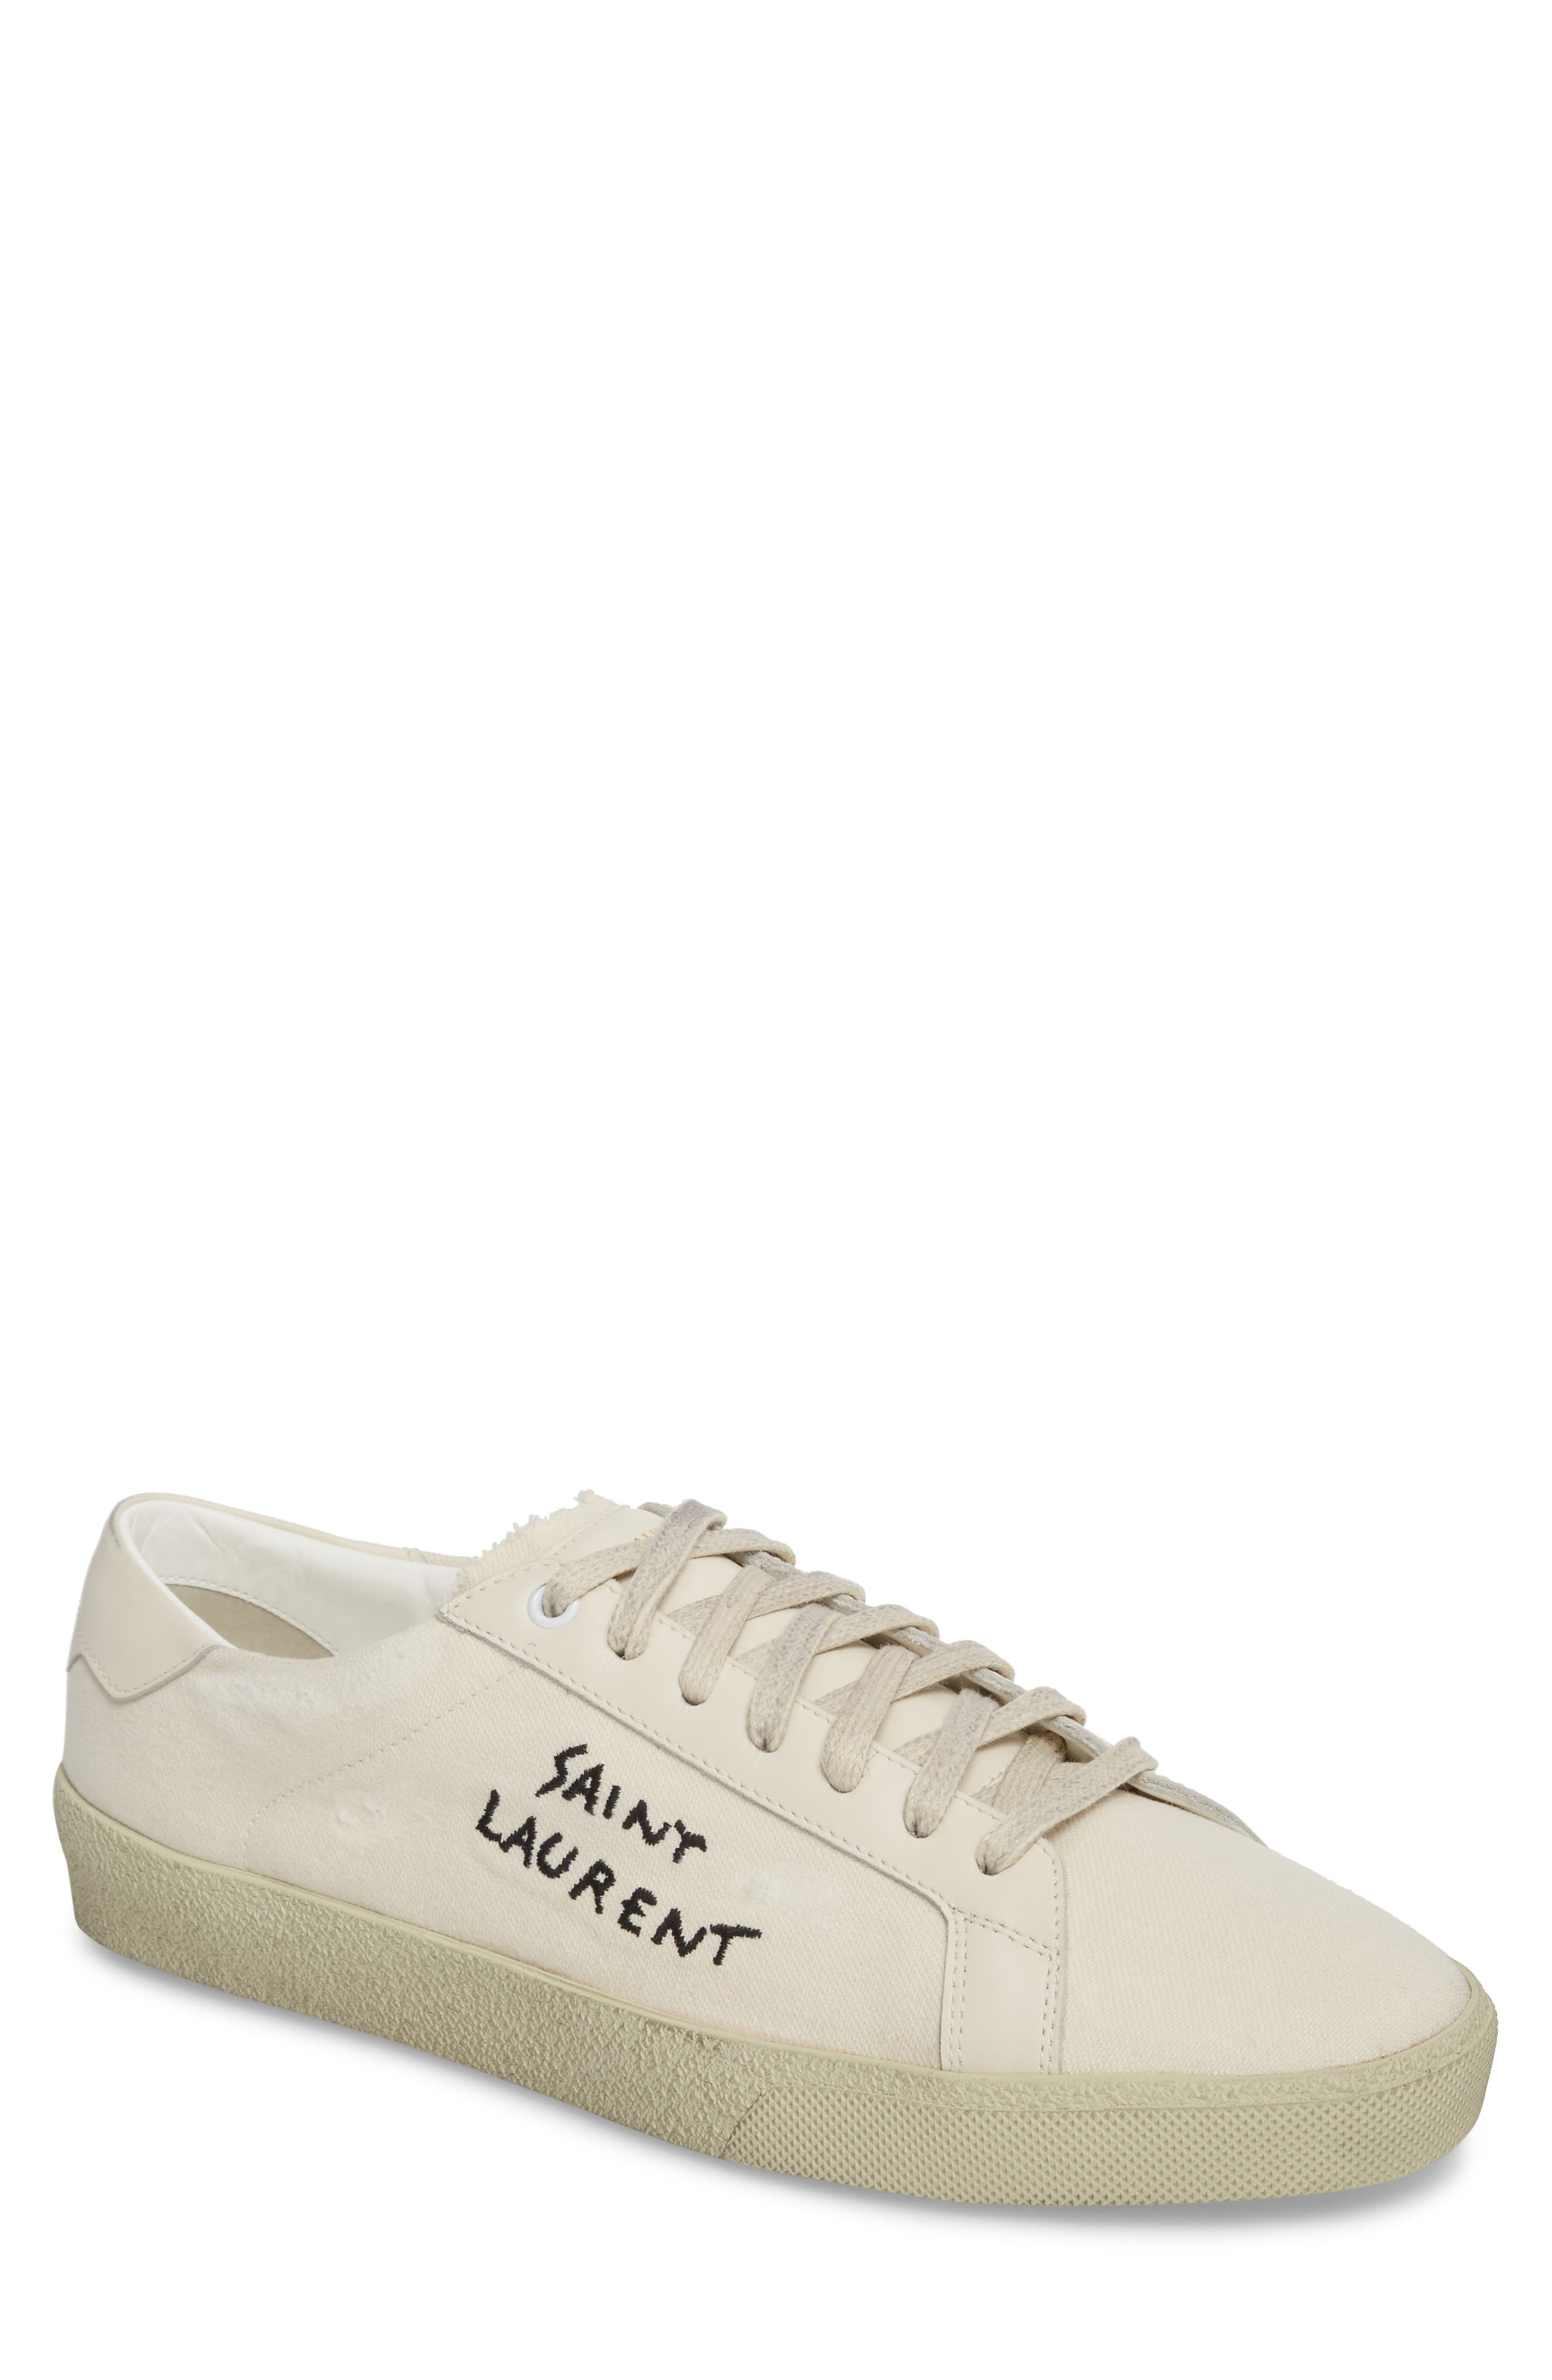 Embroidered Low Top Sneaker,                             Main thumbnail 1, color,                             Pesca